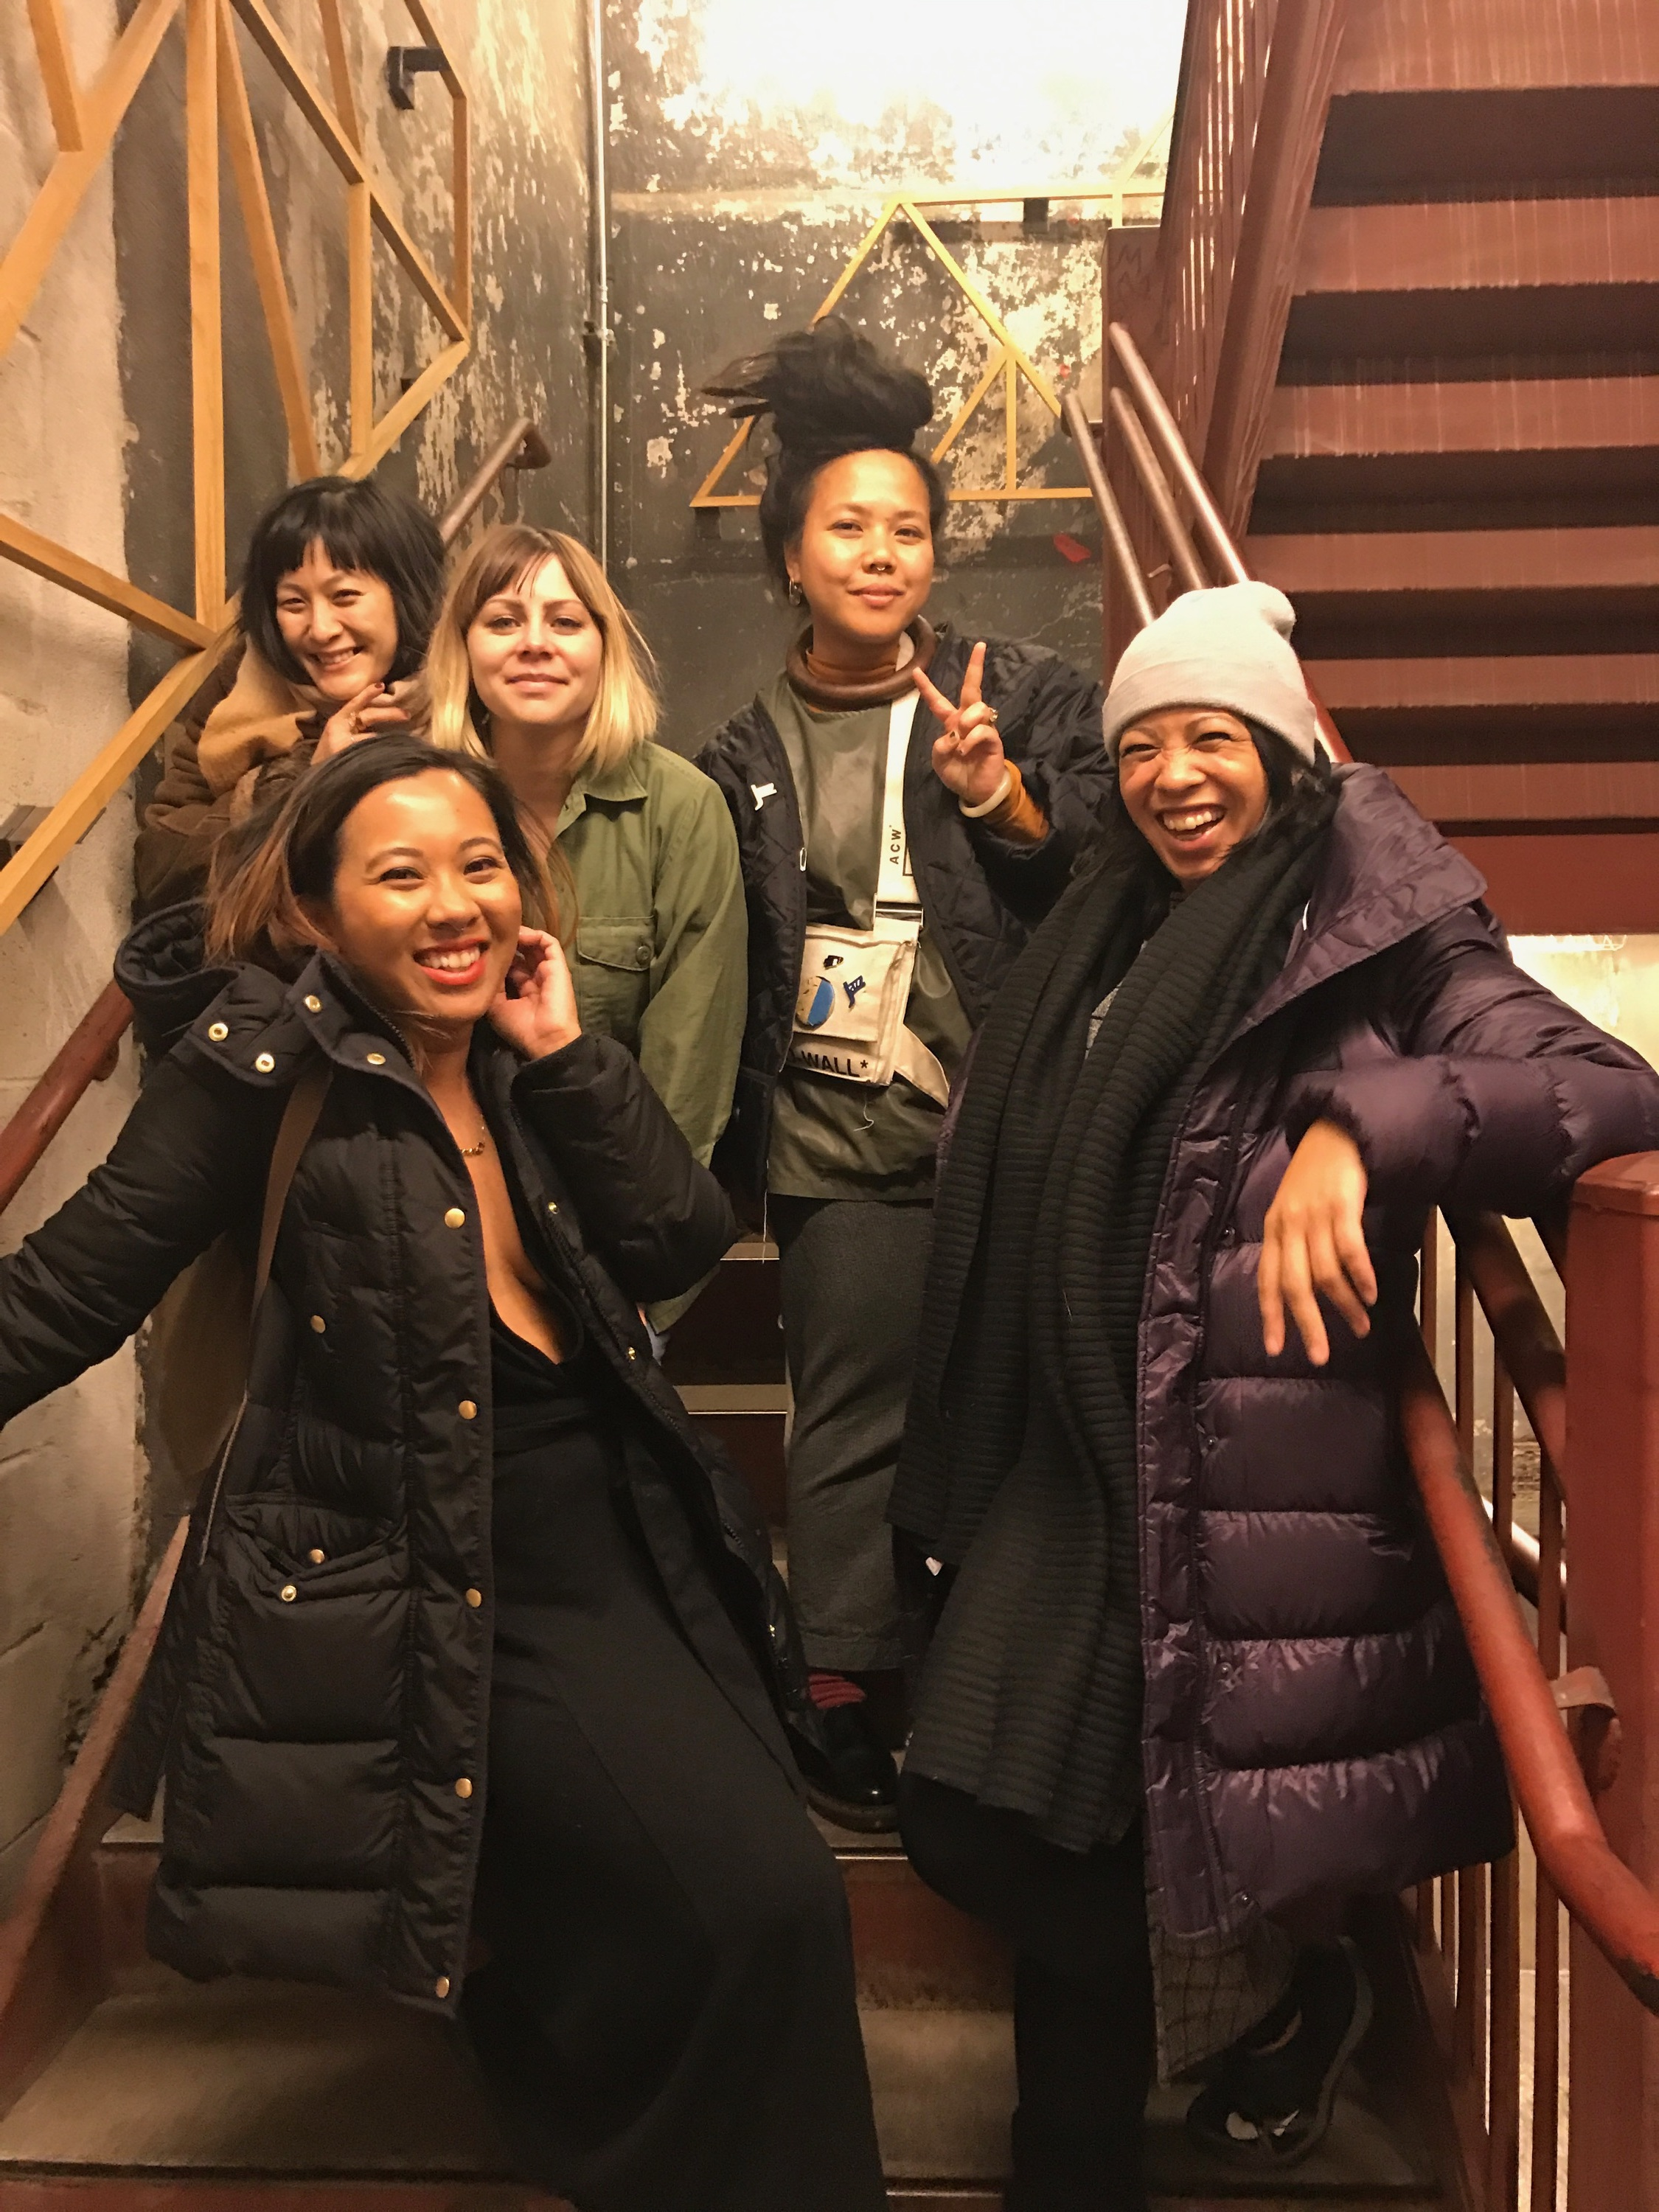 squad goals/fempire: diane chang, cara flaherty, tania enqriuez, yana gilbuena, & yours truly. xoxo, ladies, now let's get in formation. <3